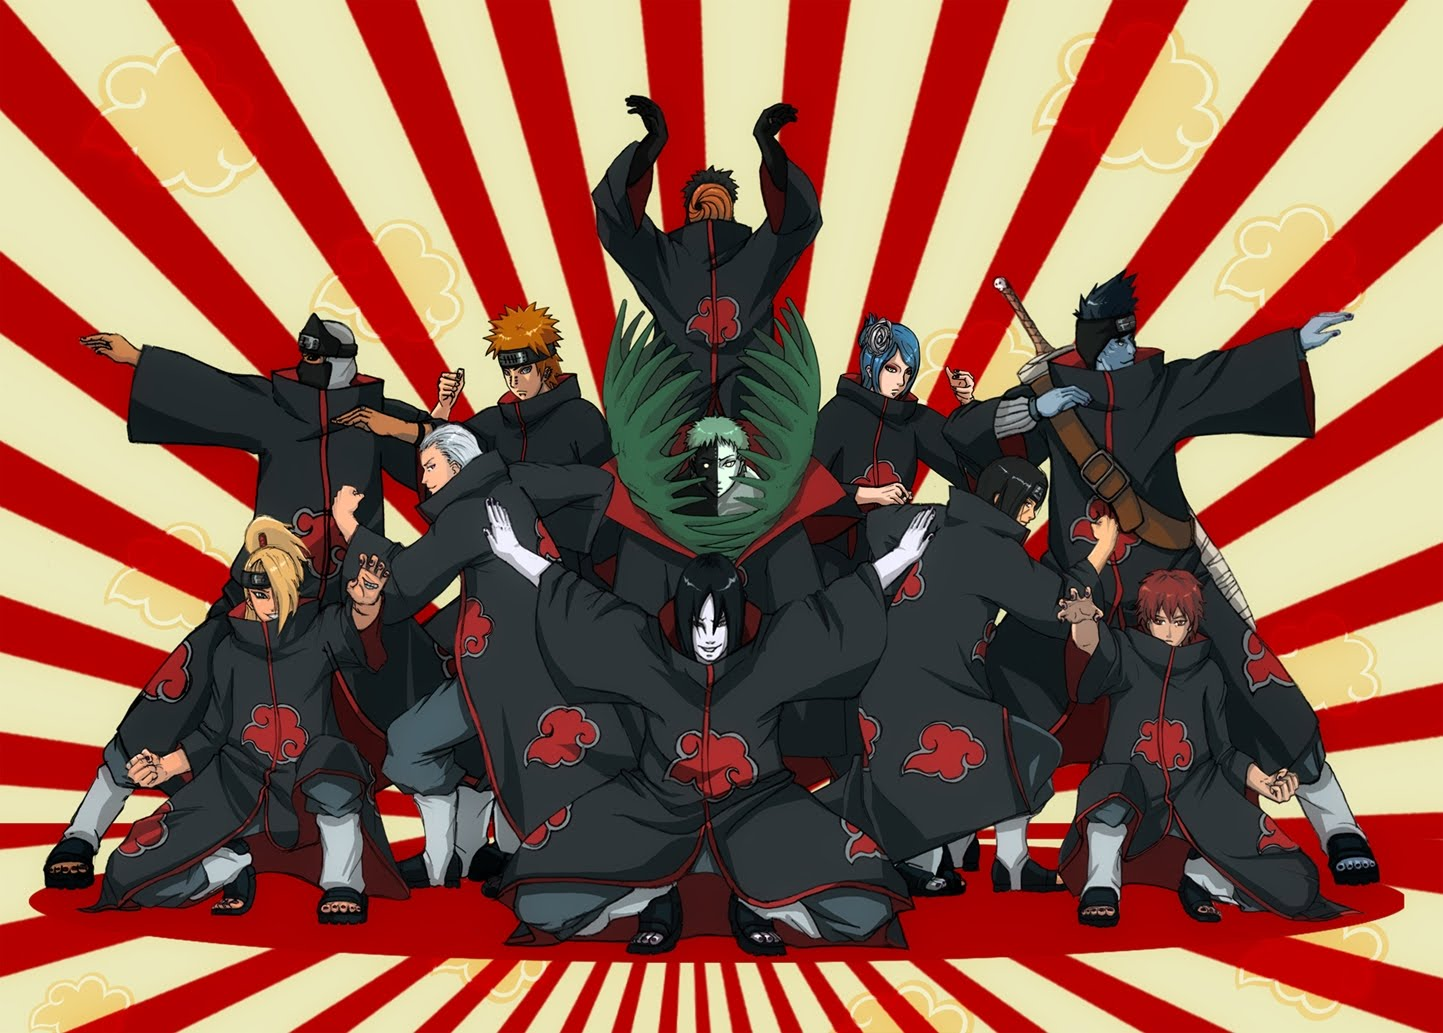 http://1.bp.blogspot.com/_-0zAjCOTA3M/TQBfEDx2fiI/AAAAAAAAACY/occjdjtngTE/s1600/naruto-wallpapers-akatsuki-fight-big.jpg